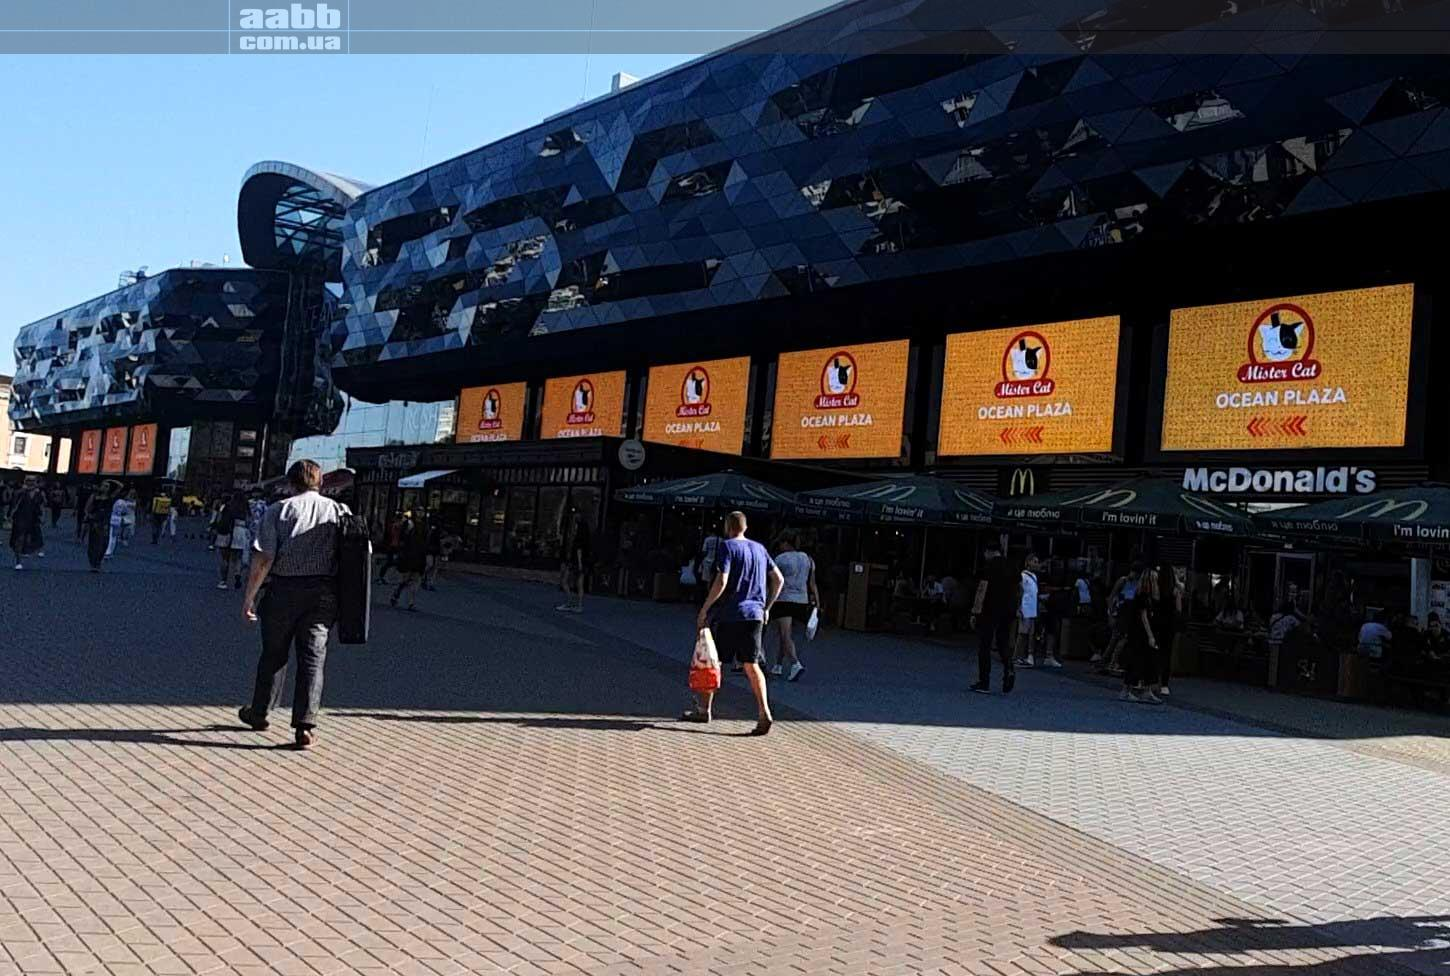 Advertising on the Ocean Plaza sh. mall mediafacade (August 2019)